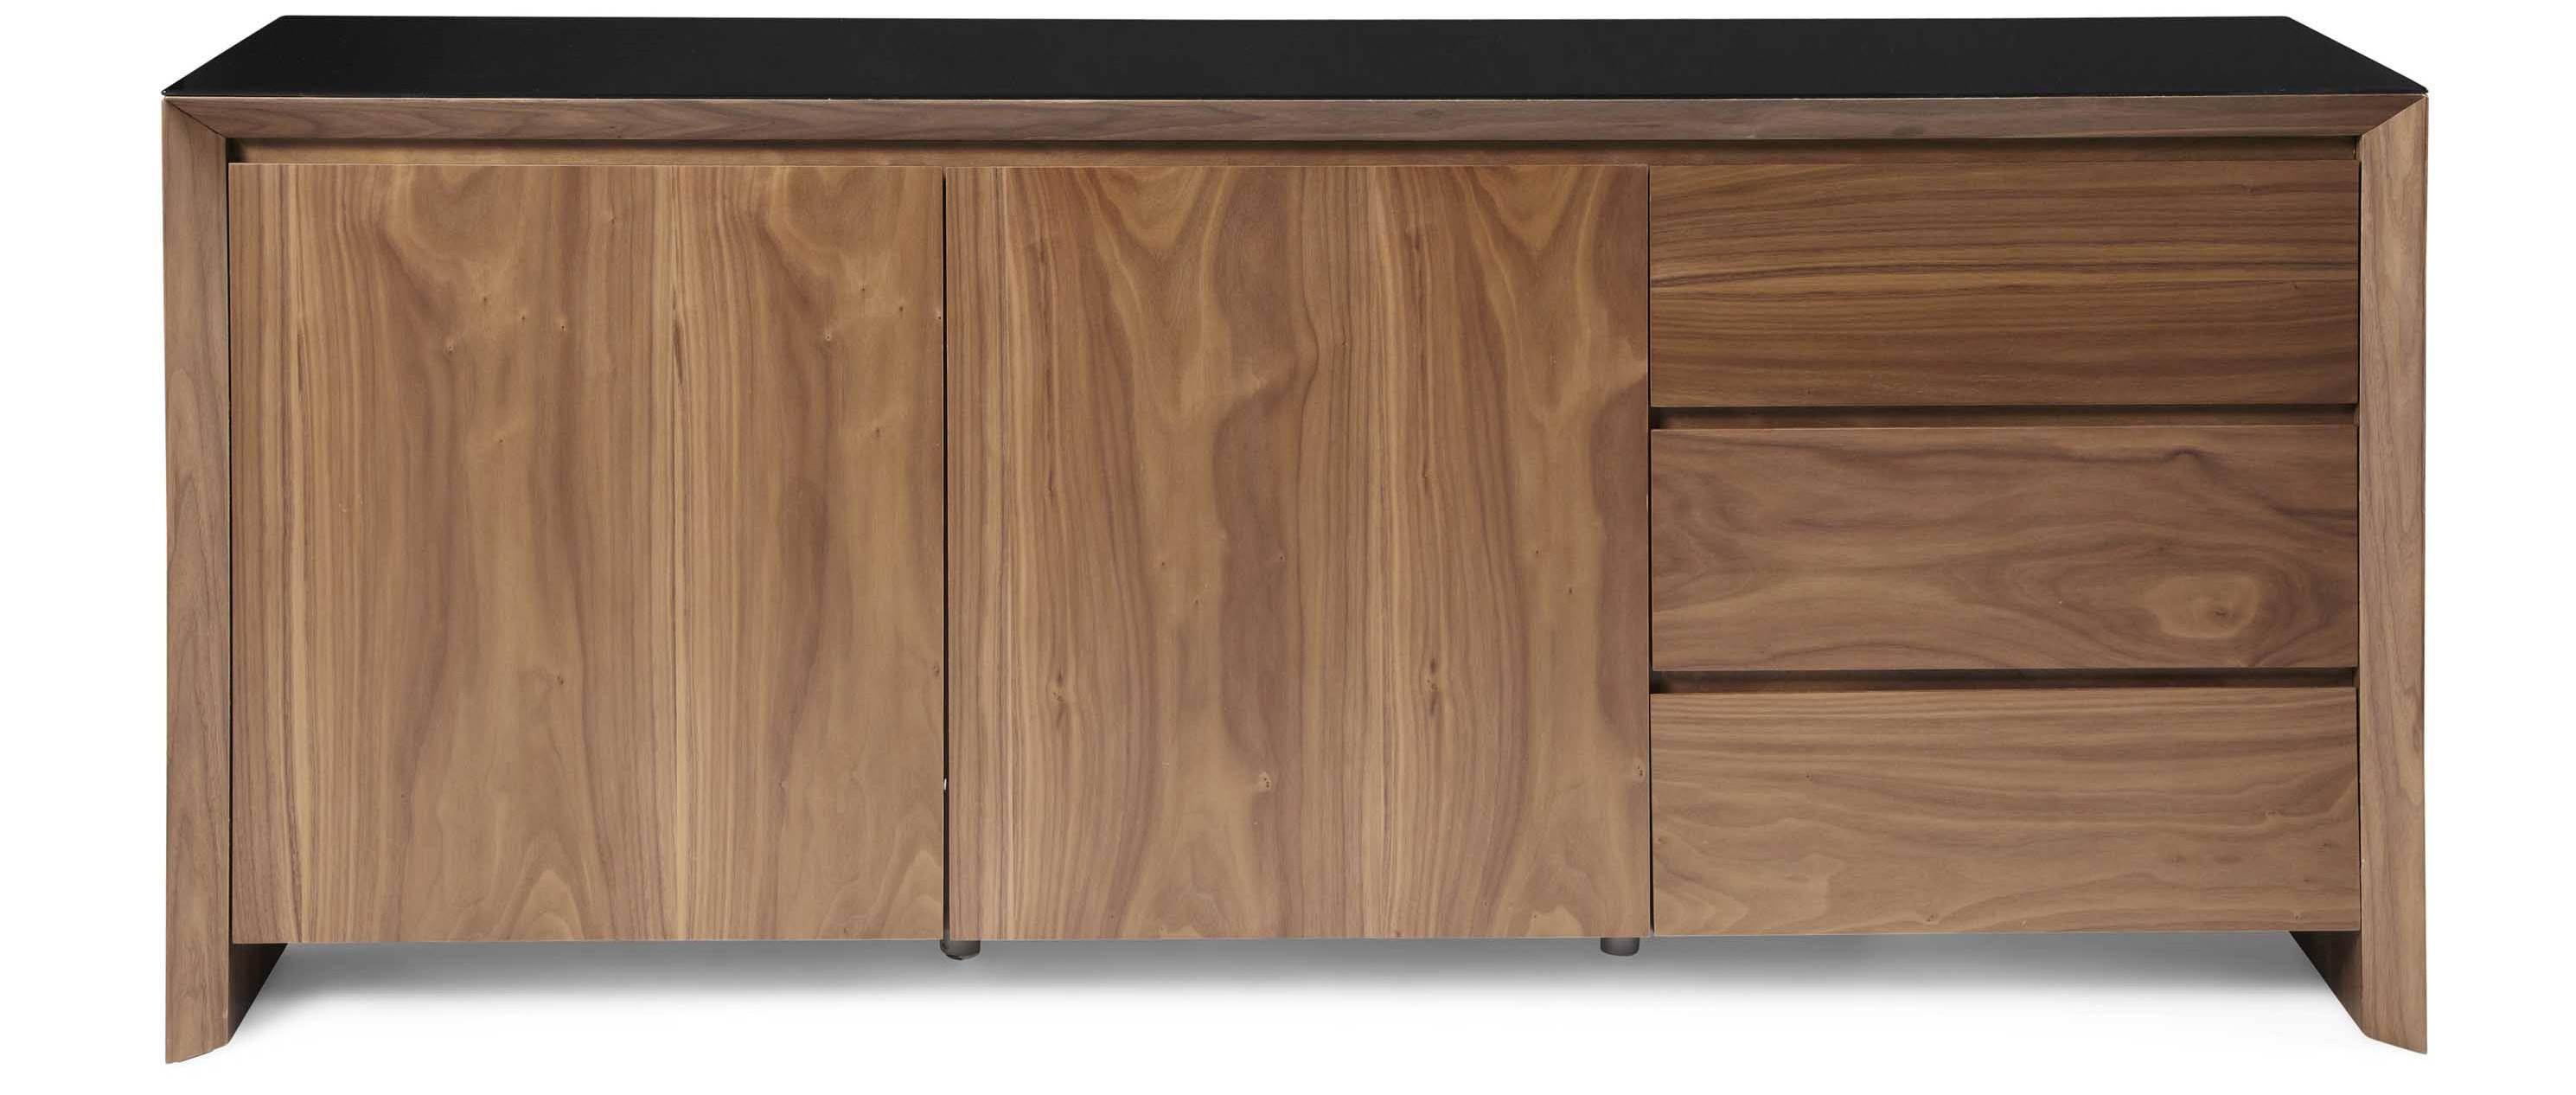 Soho - Extra Large Sideboard - Walnut throughout Fully Assembled Sideboards (Image 26 of 30)